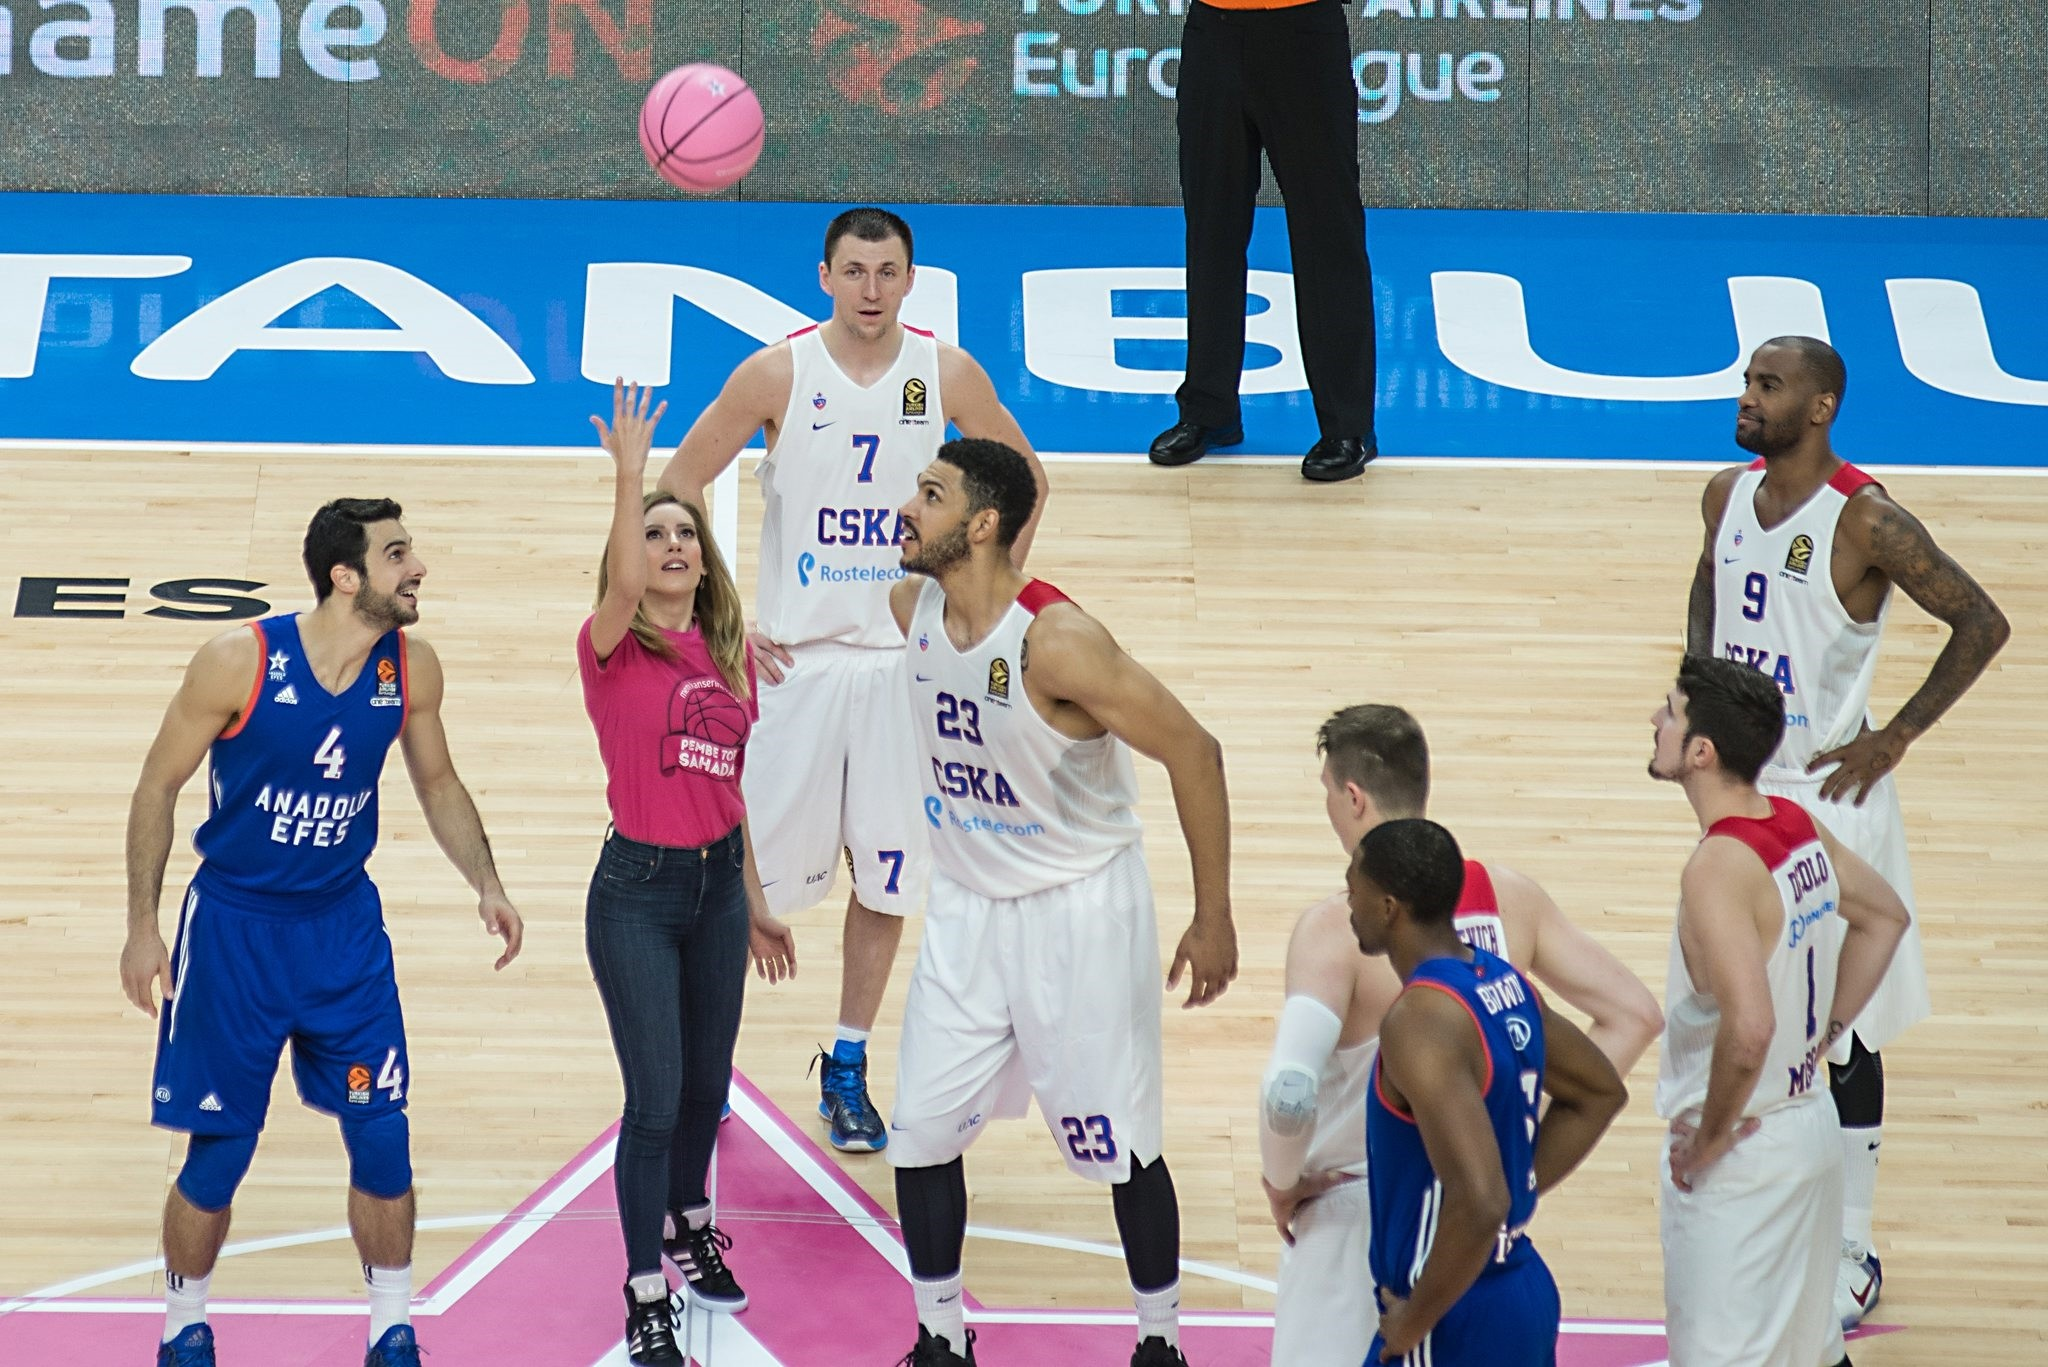 Turkish actress Sinem Kobal threw the pink jump ball in the opening game of the Turkish Airlines EuroLeague 2016-2017 season. (AA Photo)